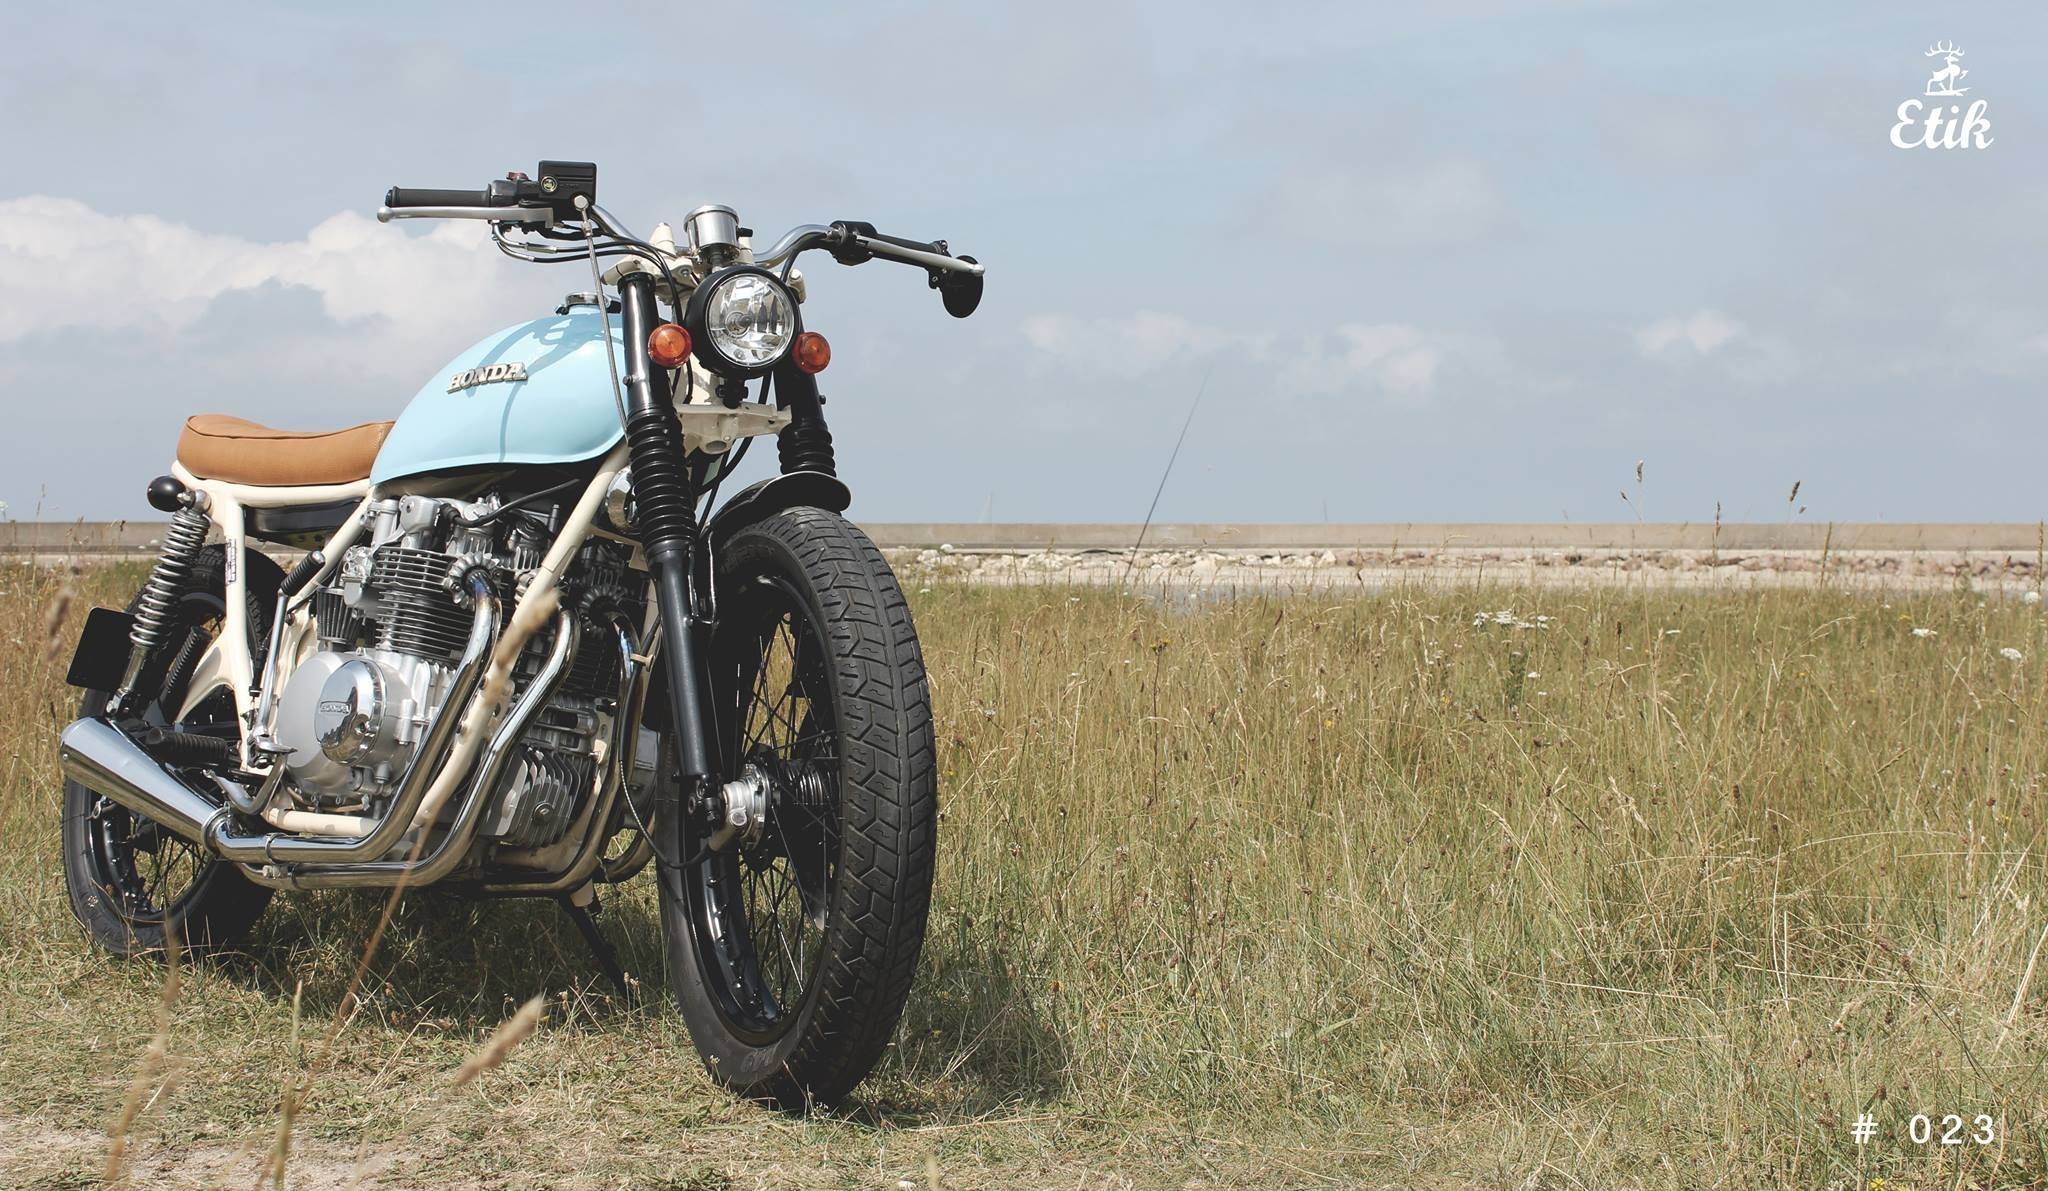 BRAT-Tracker | Honda by Etik